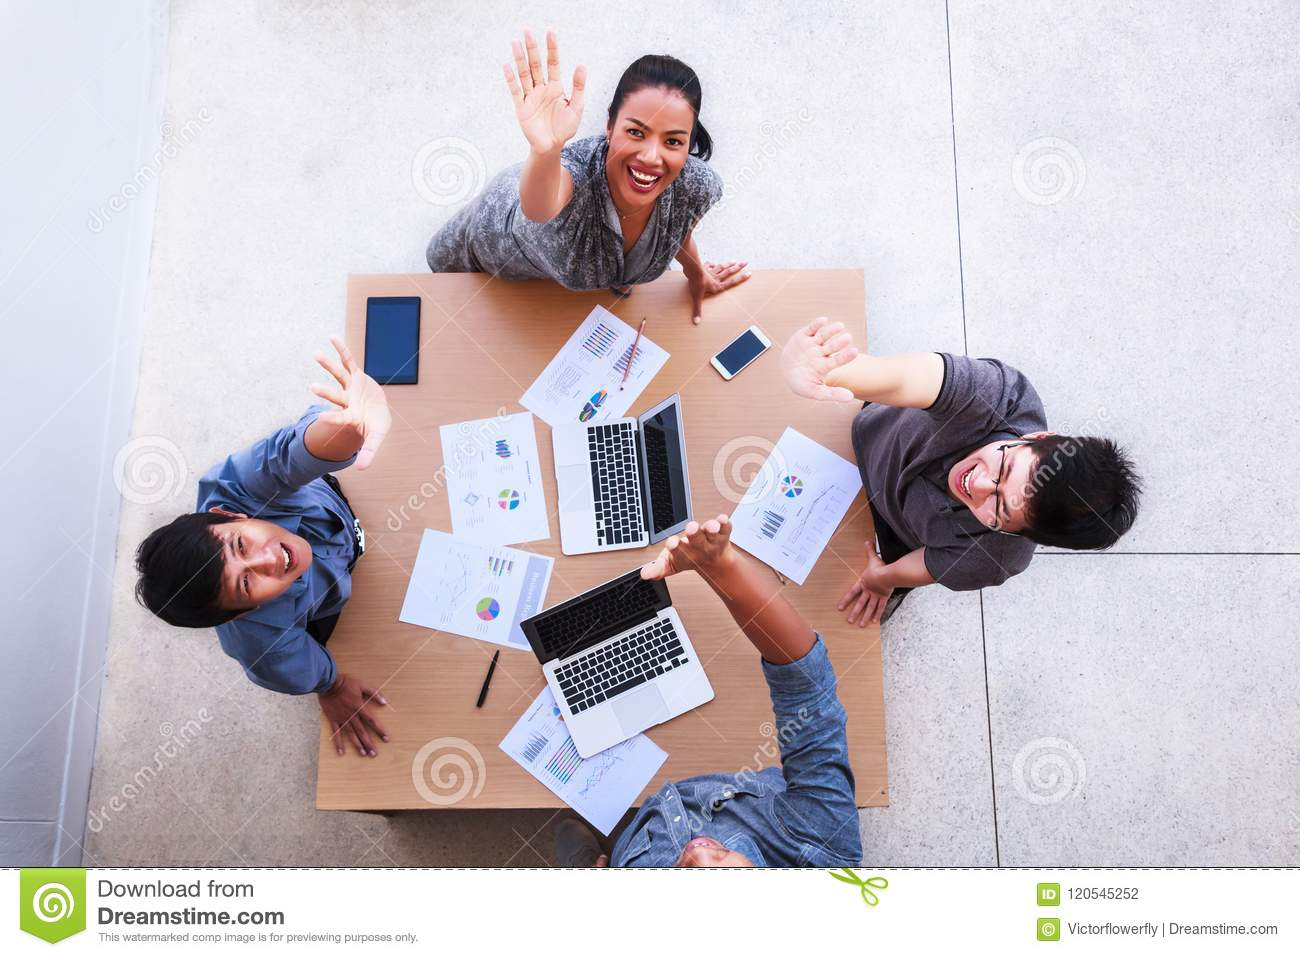 Top view of businessmen and businesswoman celebrate over table in a meeting with copy space at mobile office. Teamwork, diversity